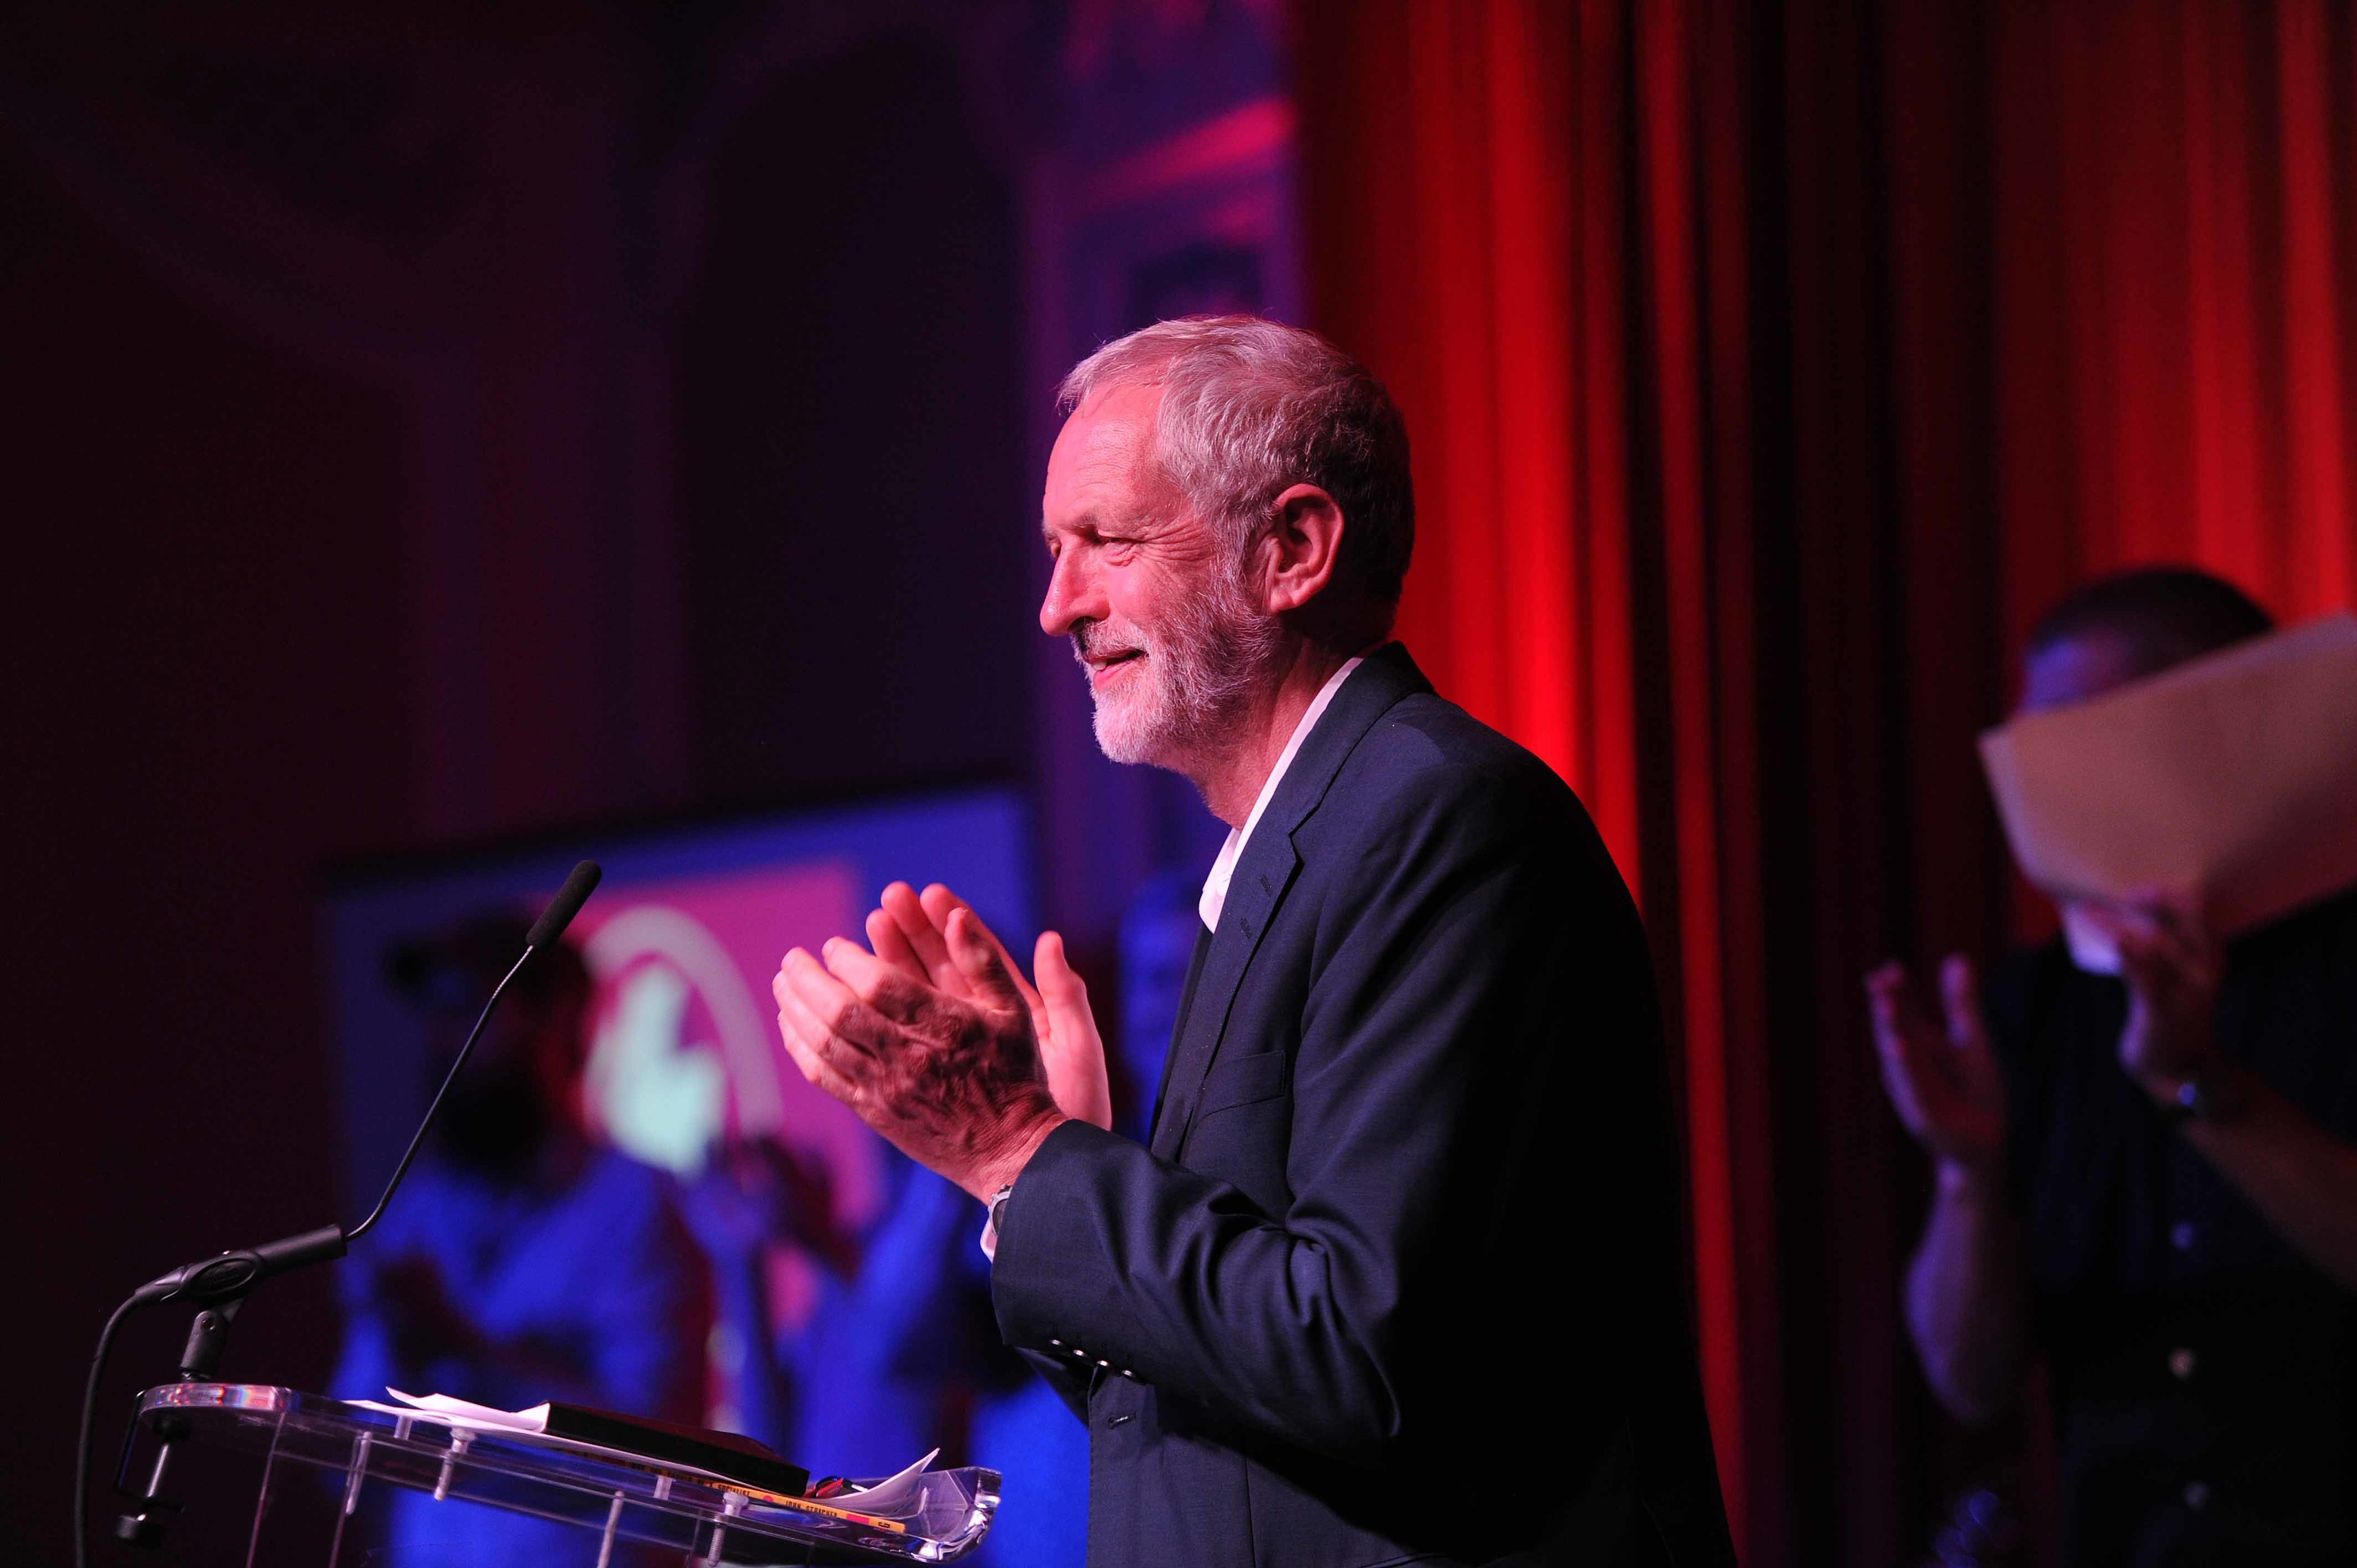 Jeremy Corbyn applauding Dundee's arts sector before addressing a rally at the Marryat Hall.